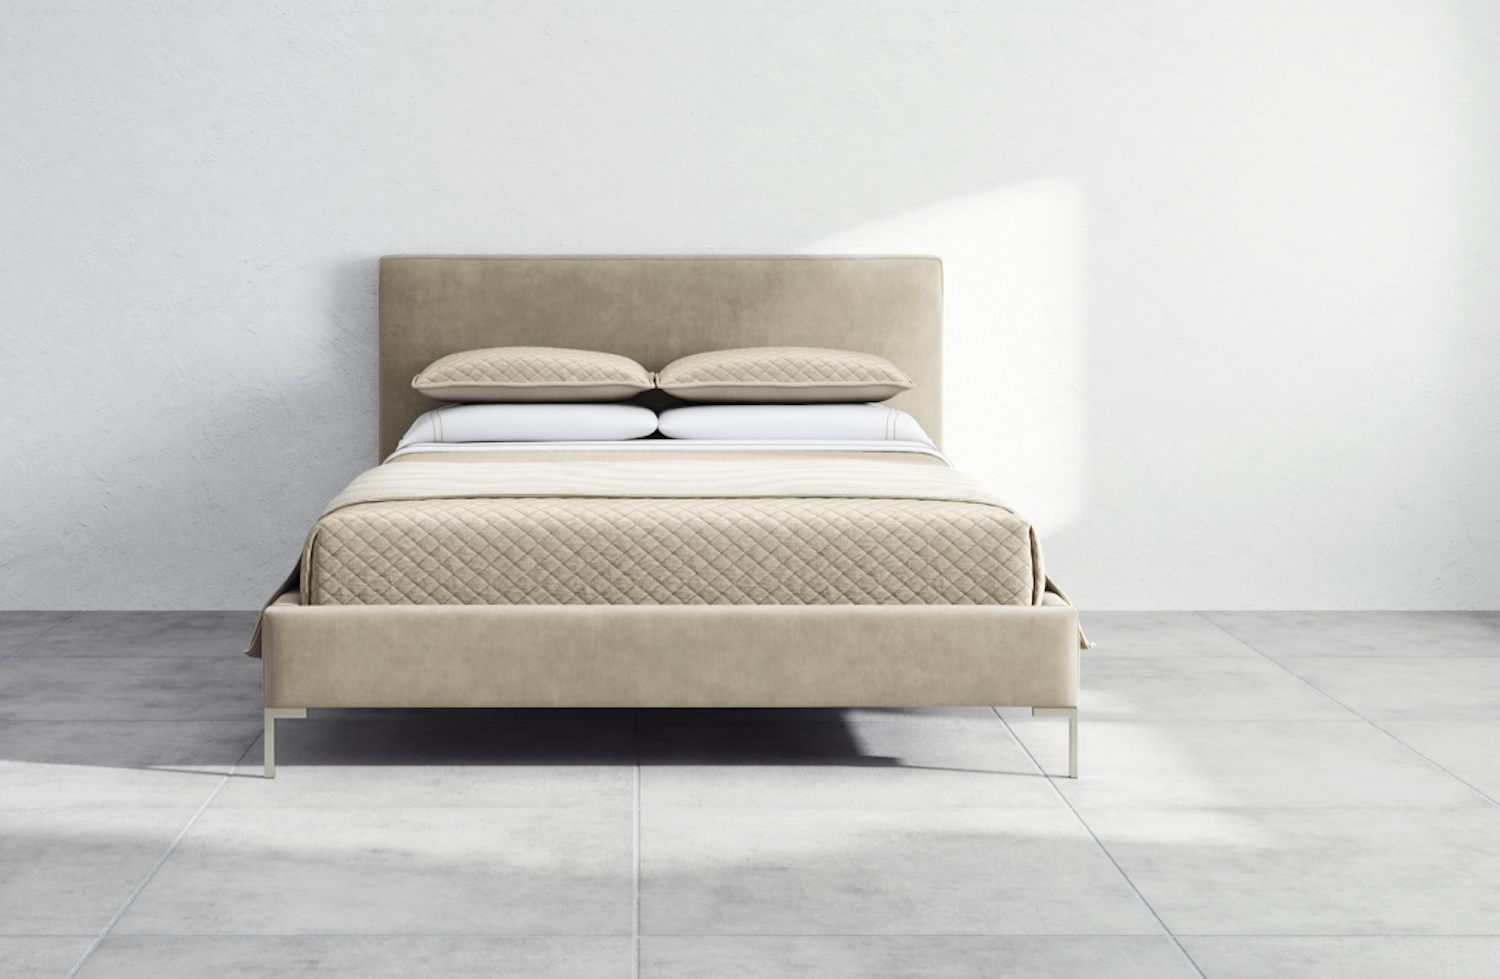 From mattress company Saatva, the Santorini Bed Frame is $loading=